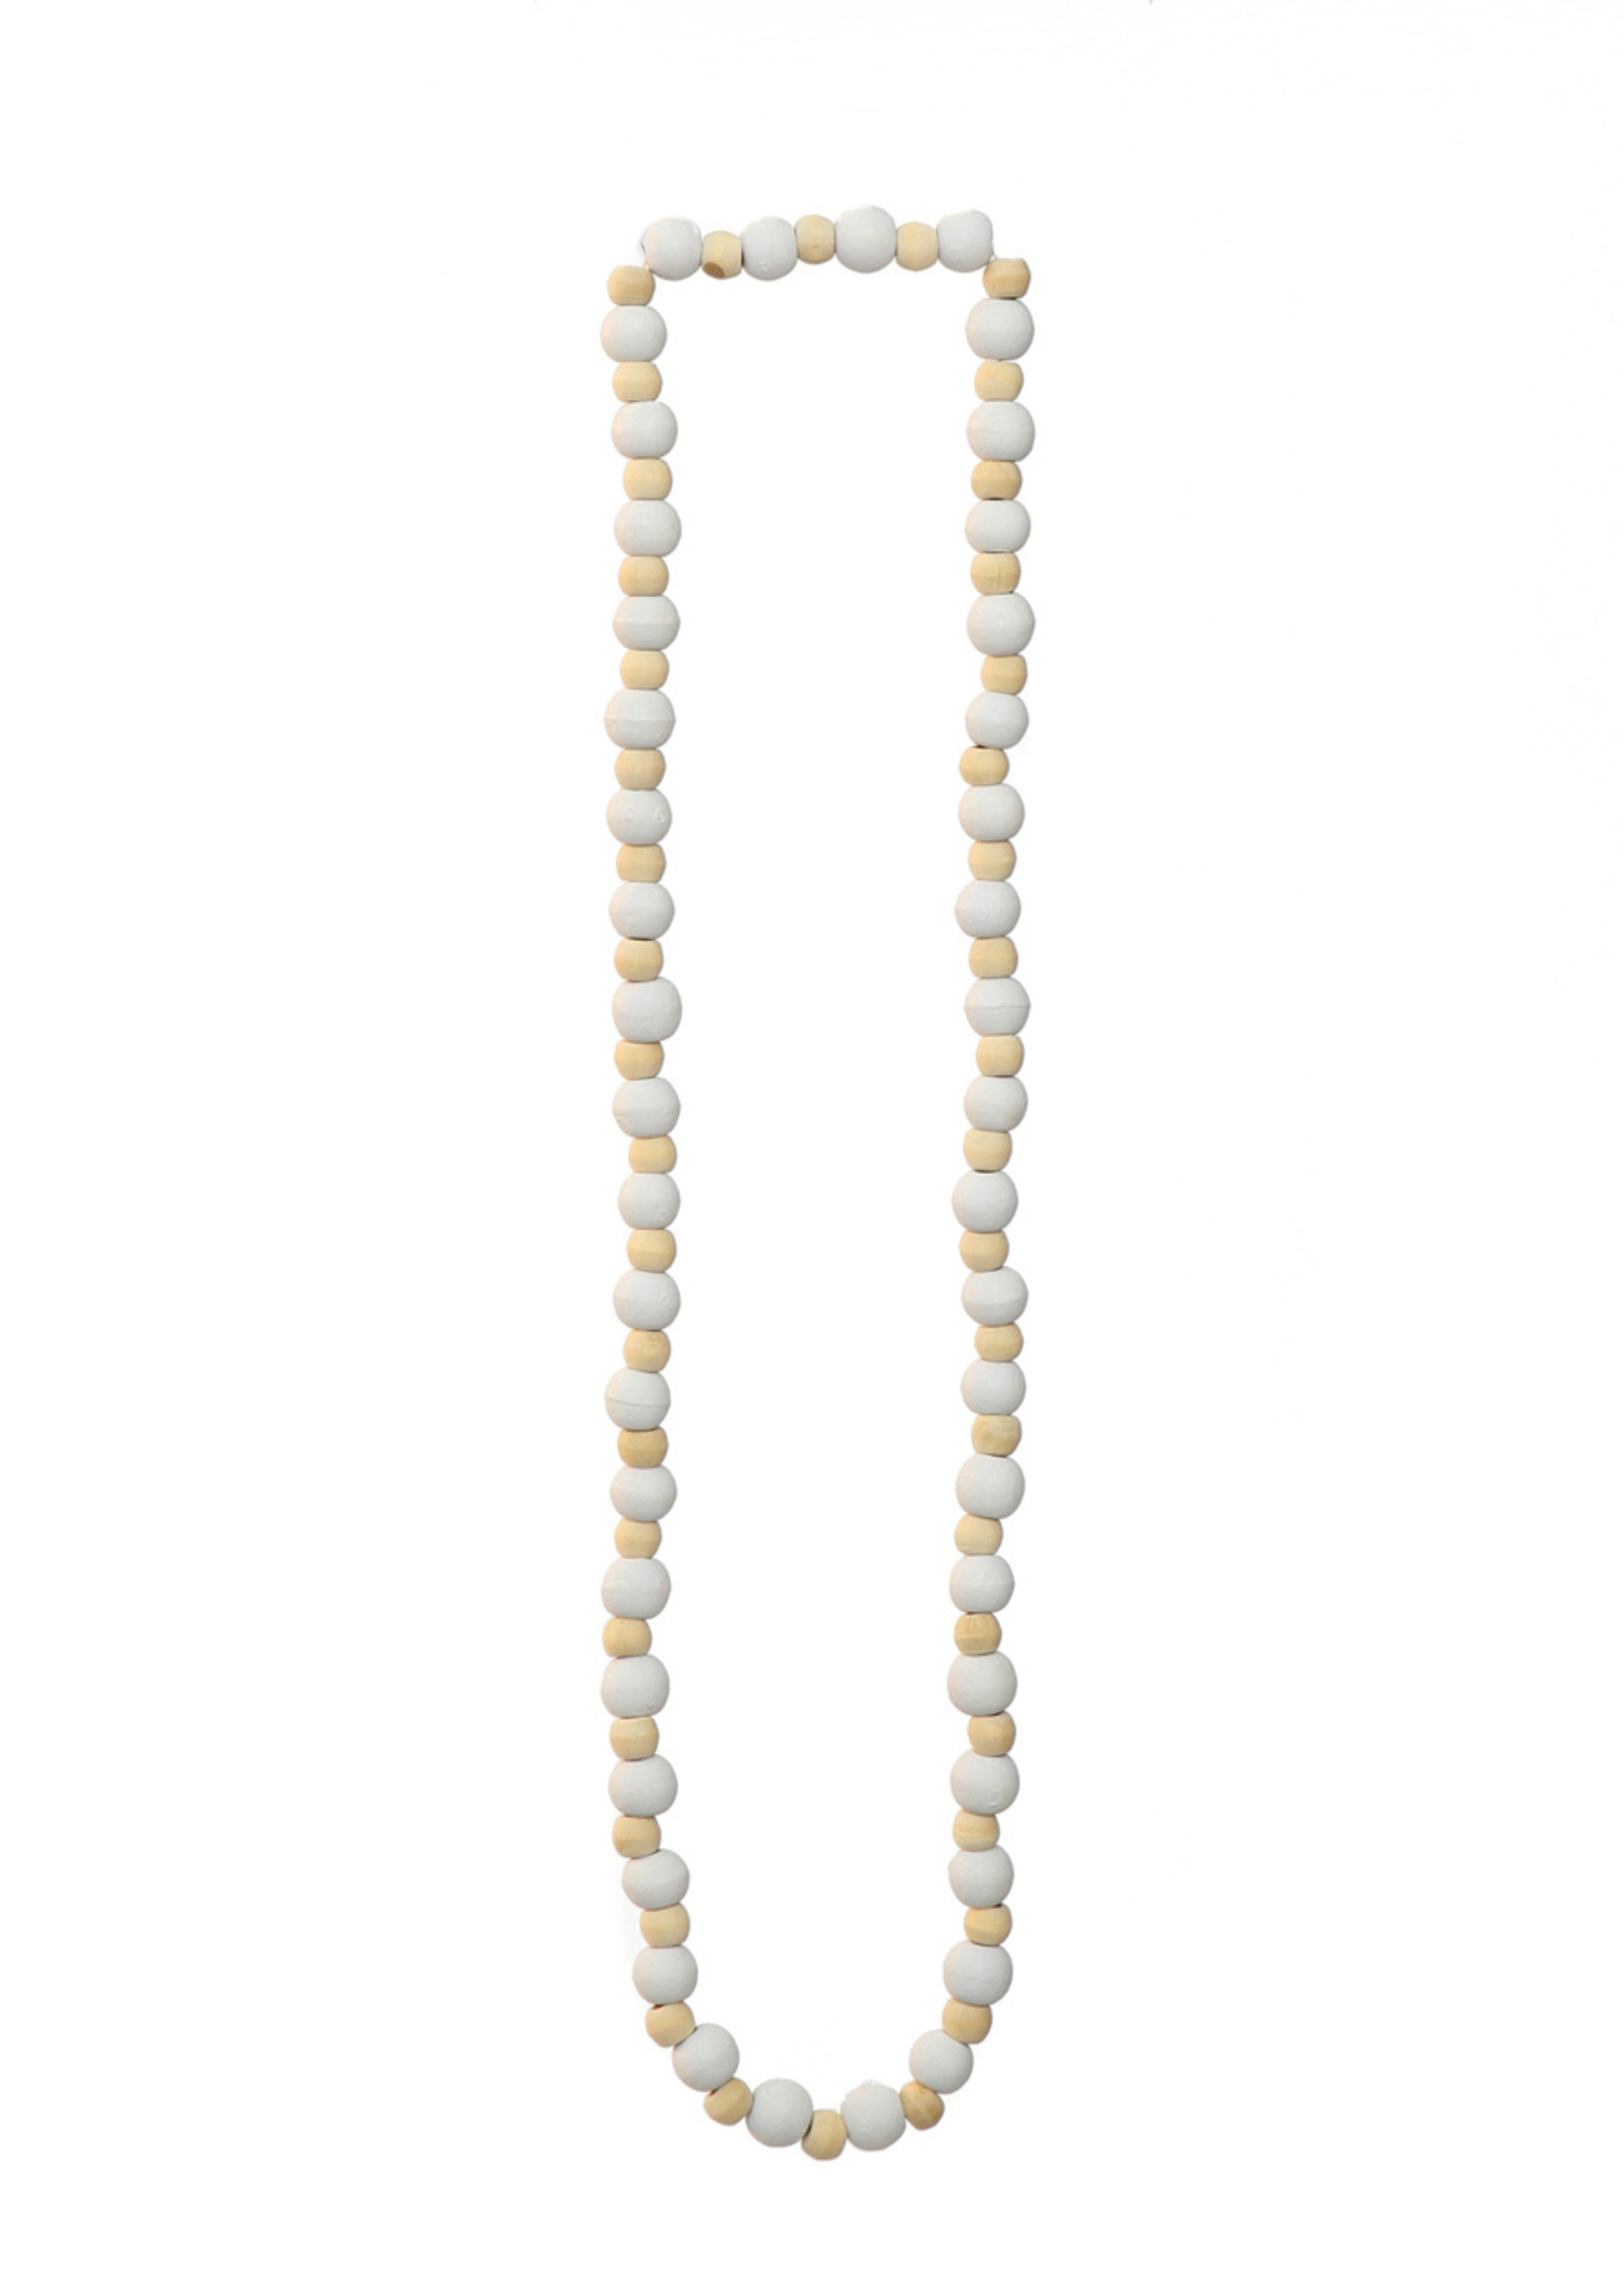 The Canggu Necklace - Natural White